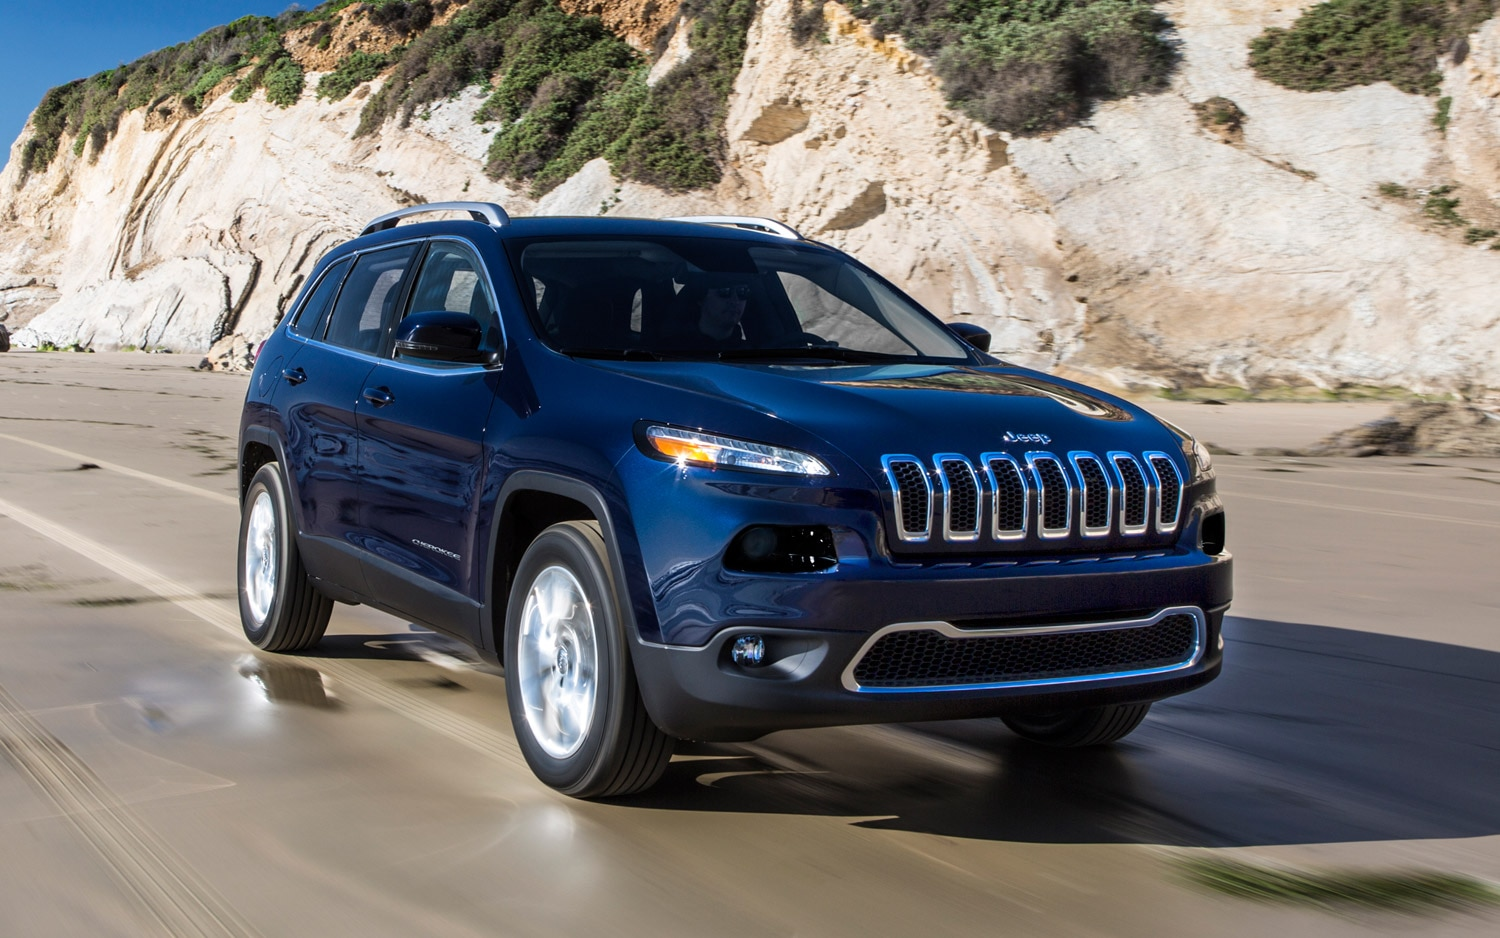 2014 Jeep Cherokee Limited front three quarter